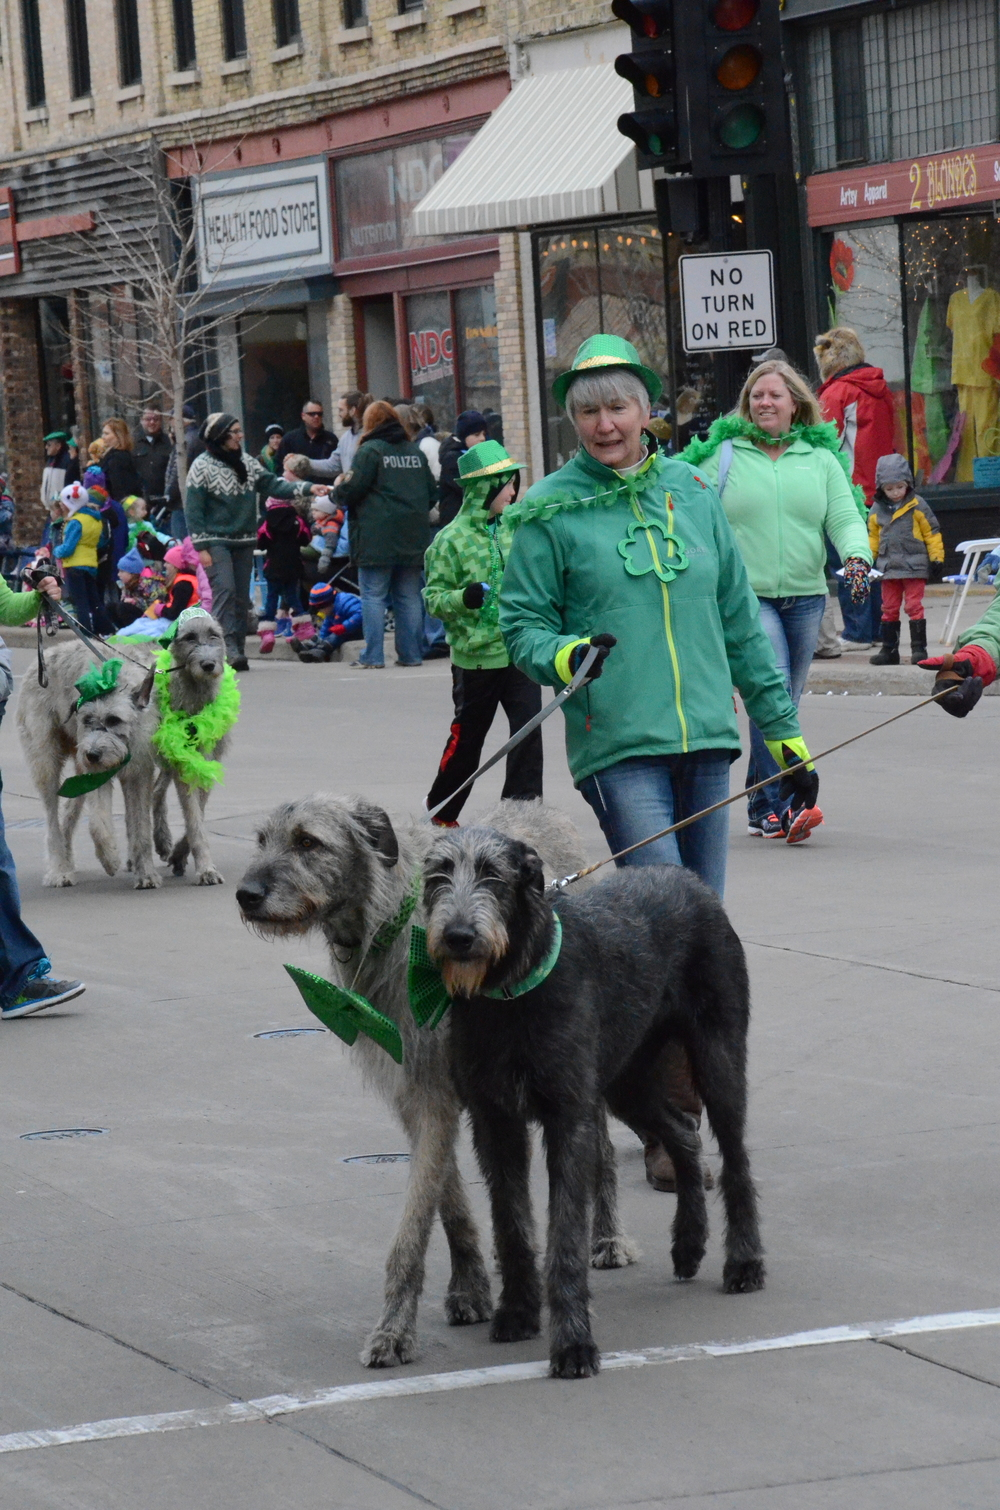 arious Oshkosh residents walk their dogs during the parade and dress them up in festive decorations.